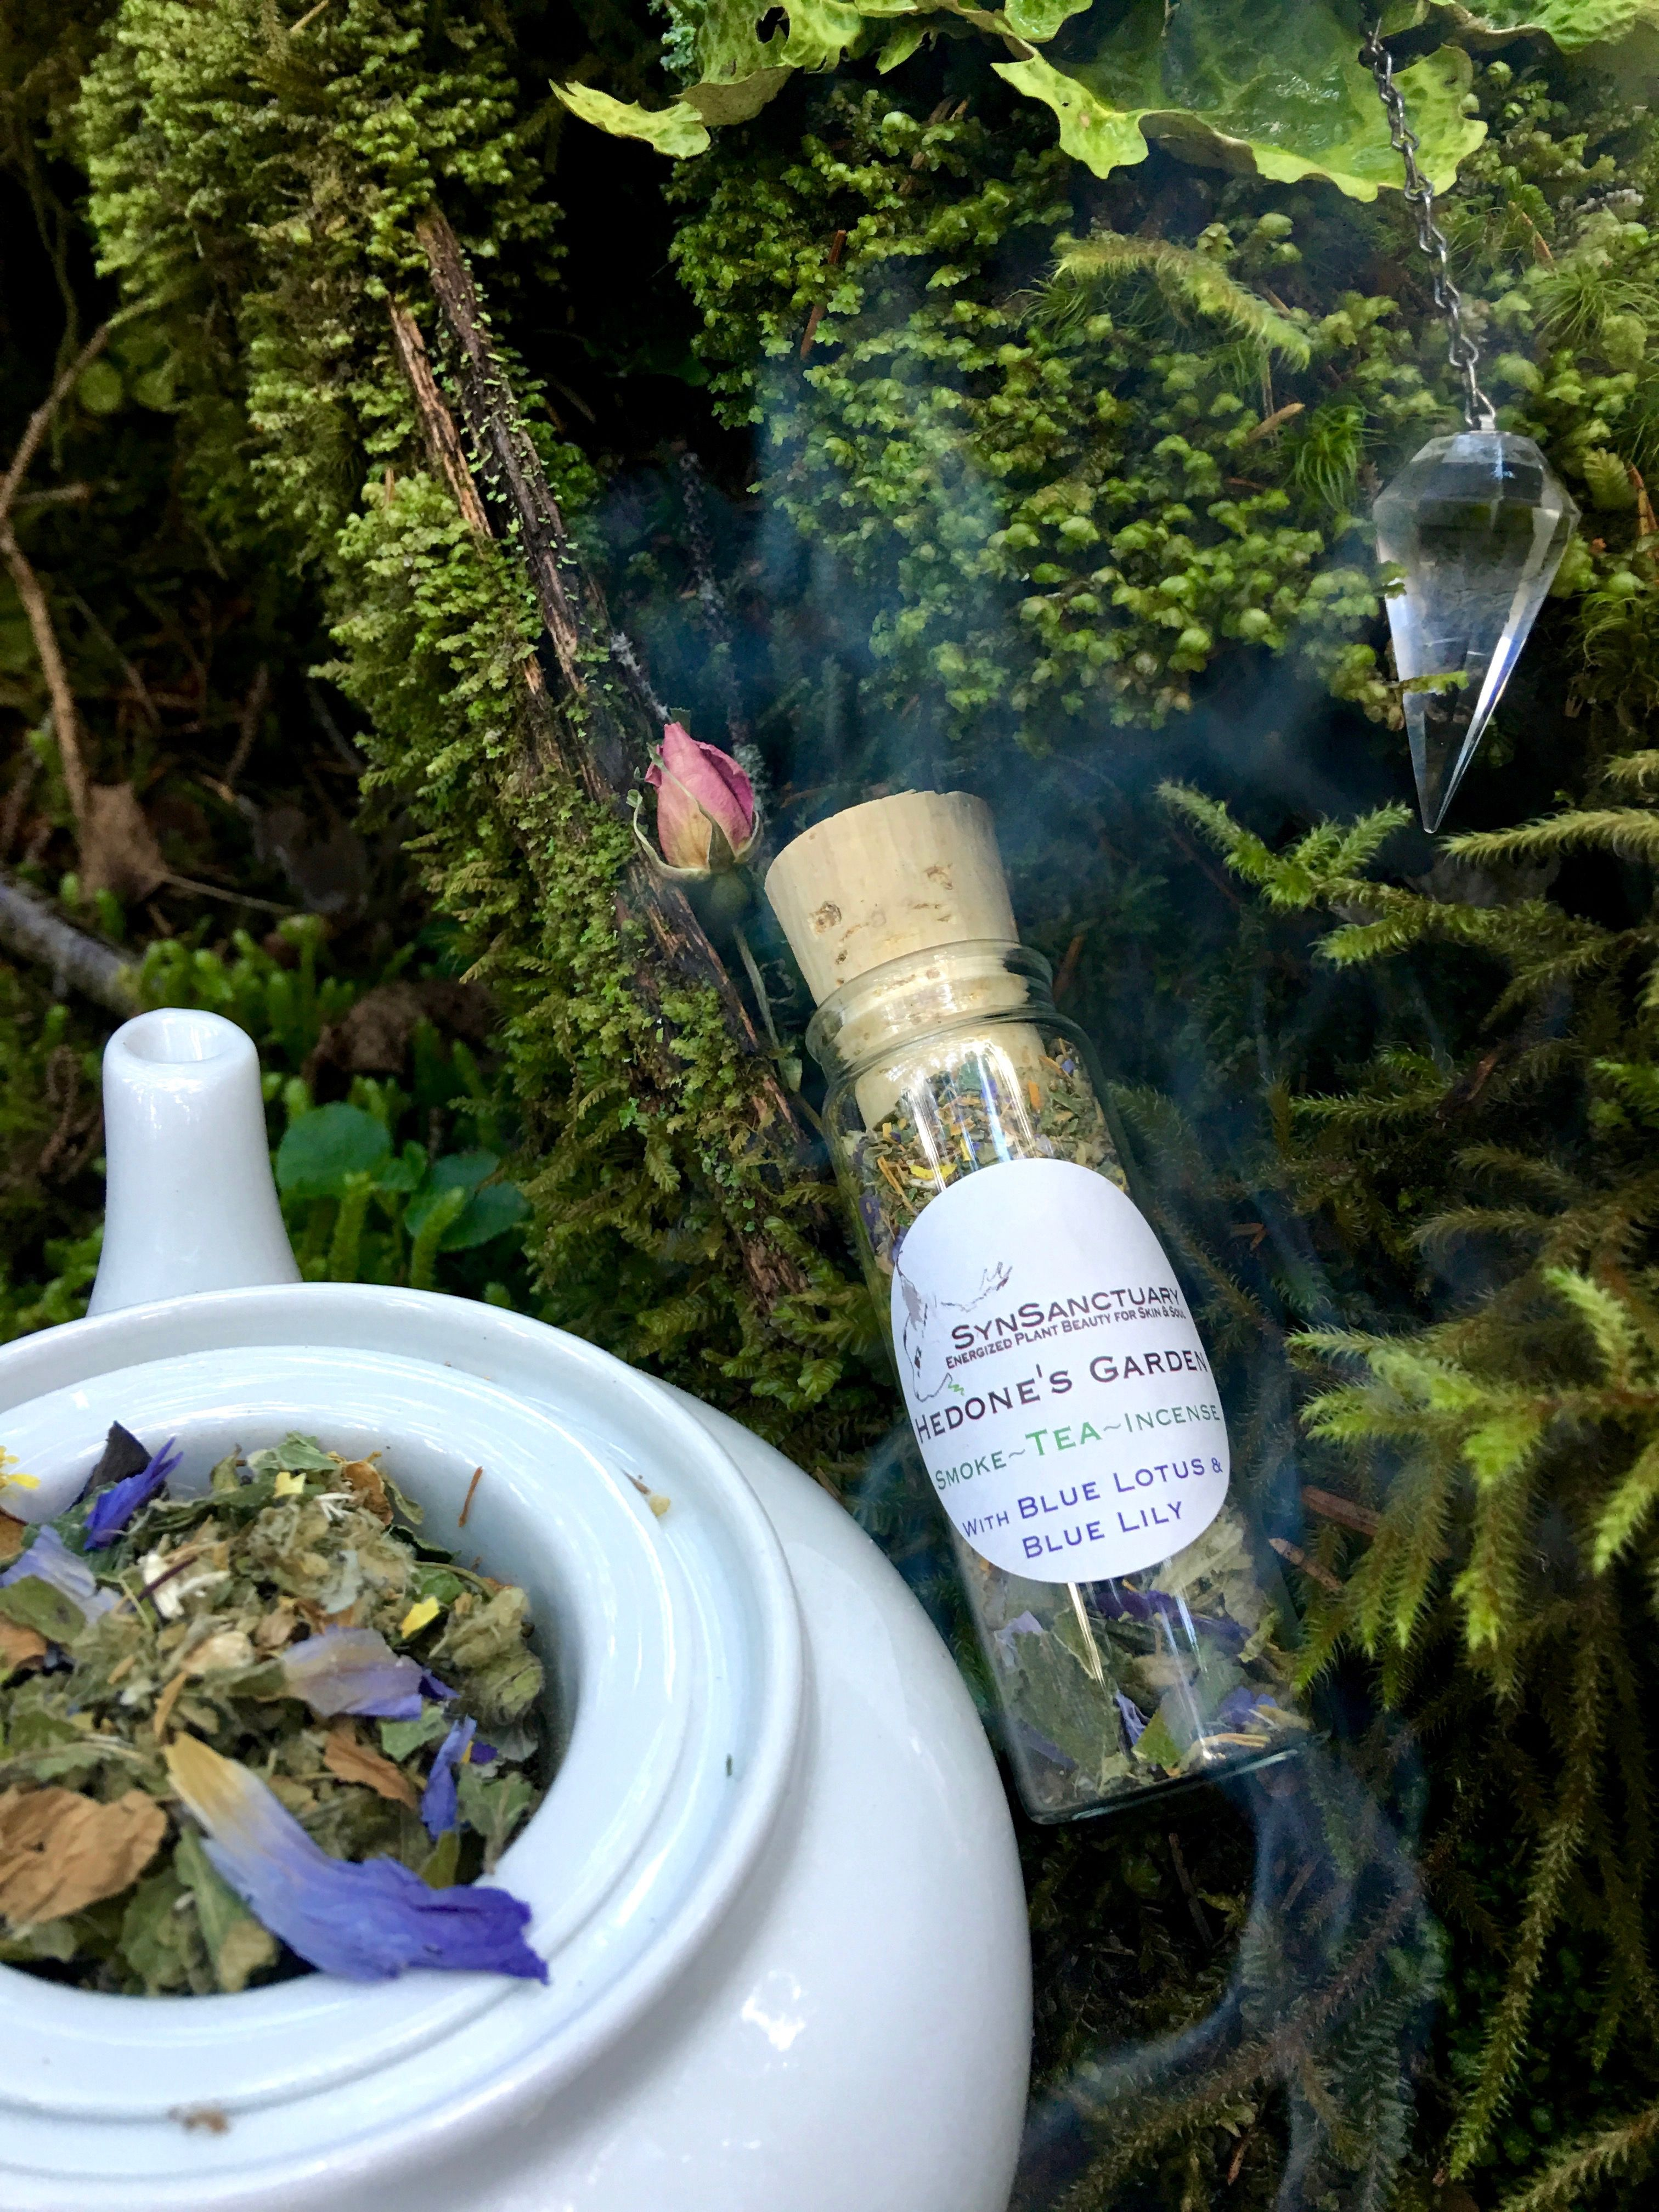 Hedones garden organic herbal tea herbal blend incense hedones garden organic smoke tea incense blend contains organic high potency herbs from around the world as well as plants wild harvested izmirmasajfo